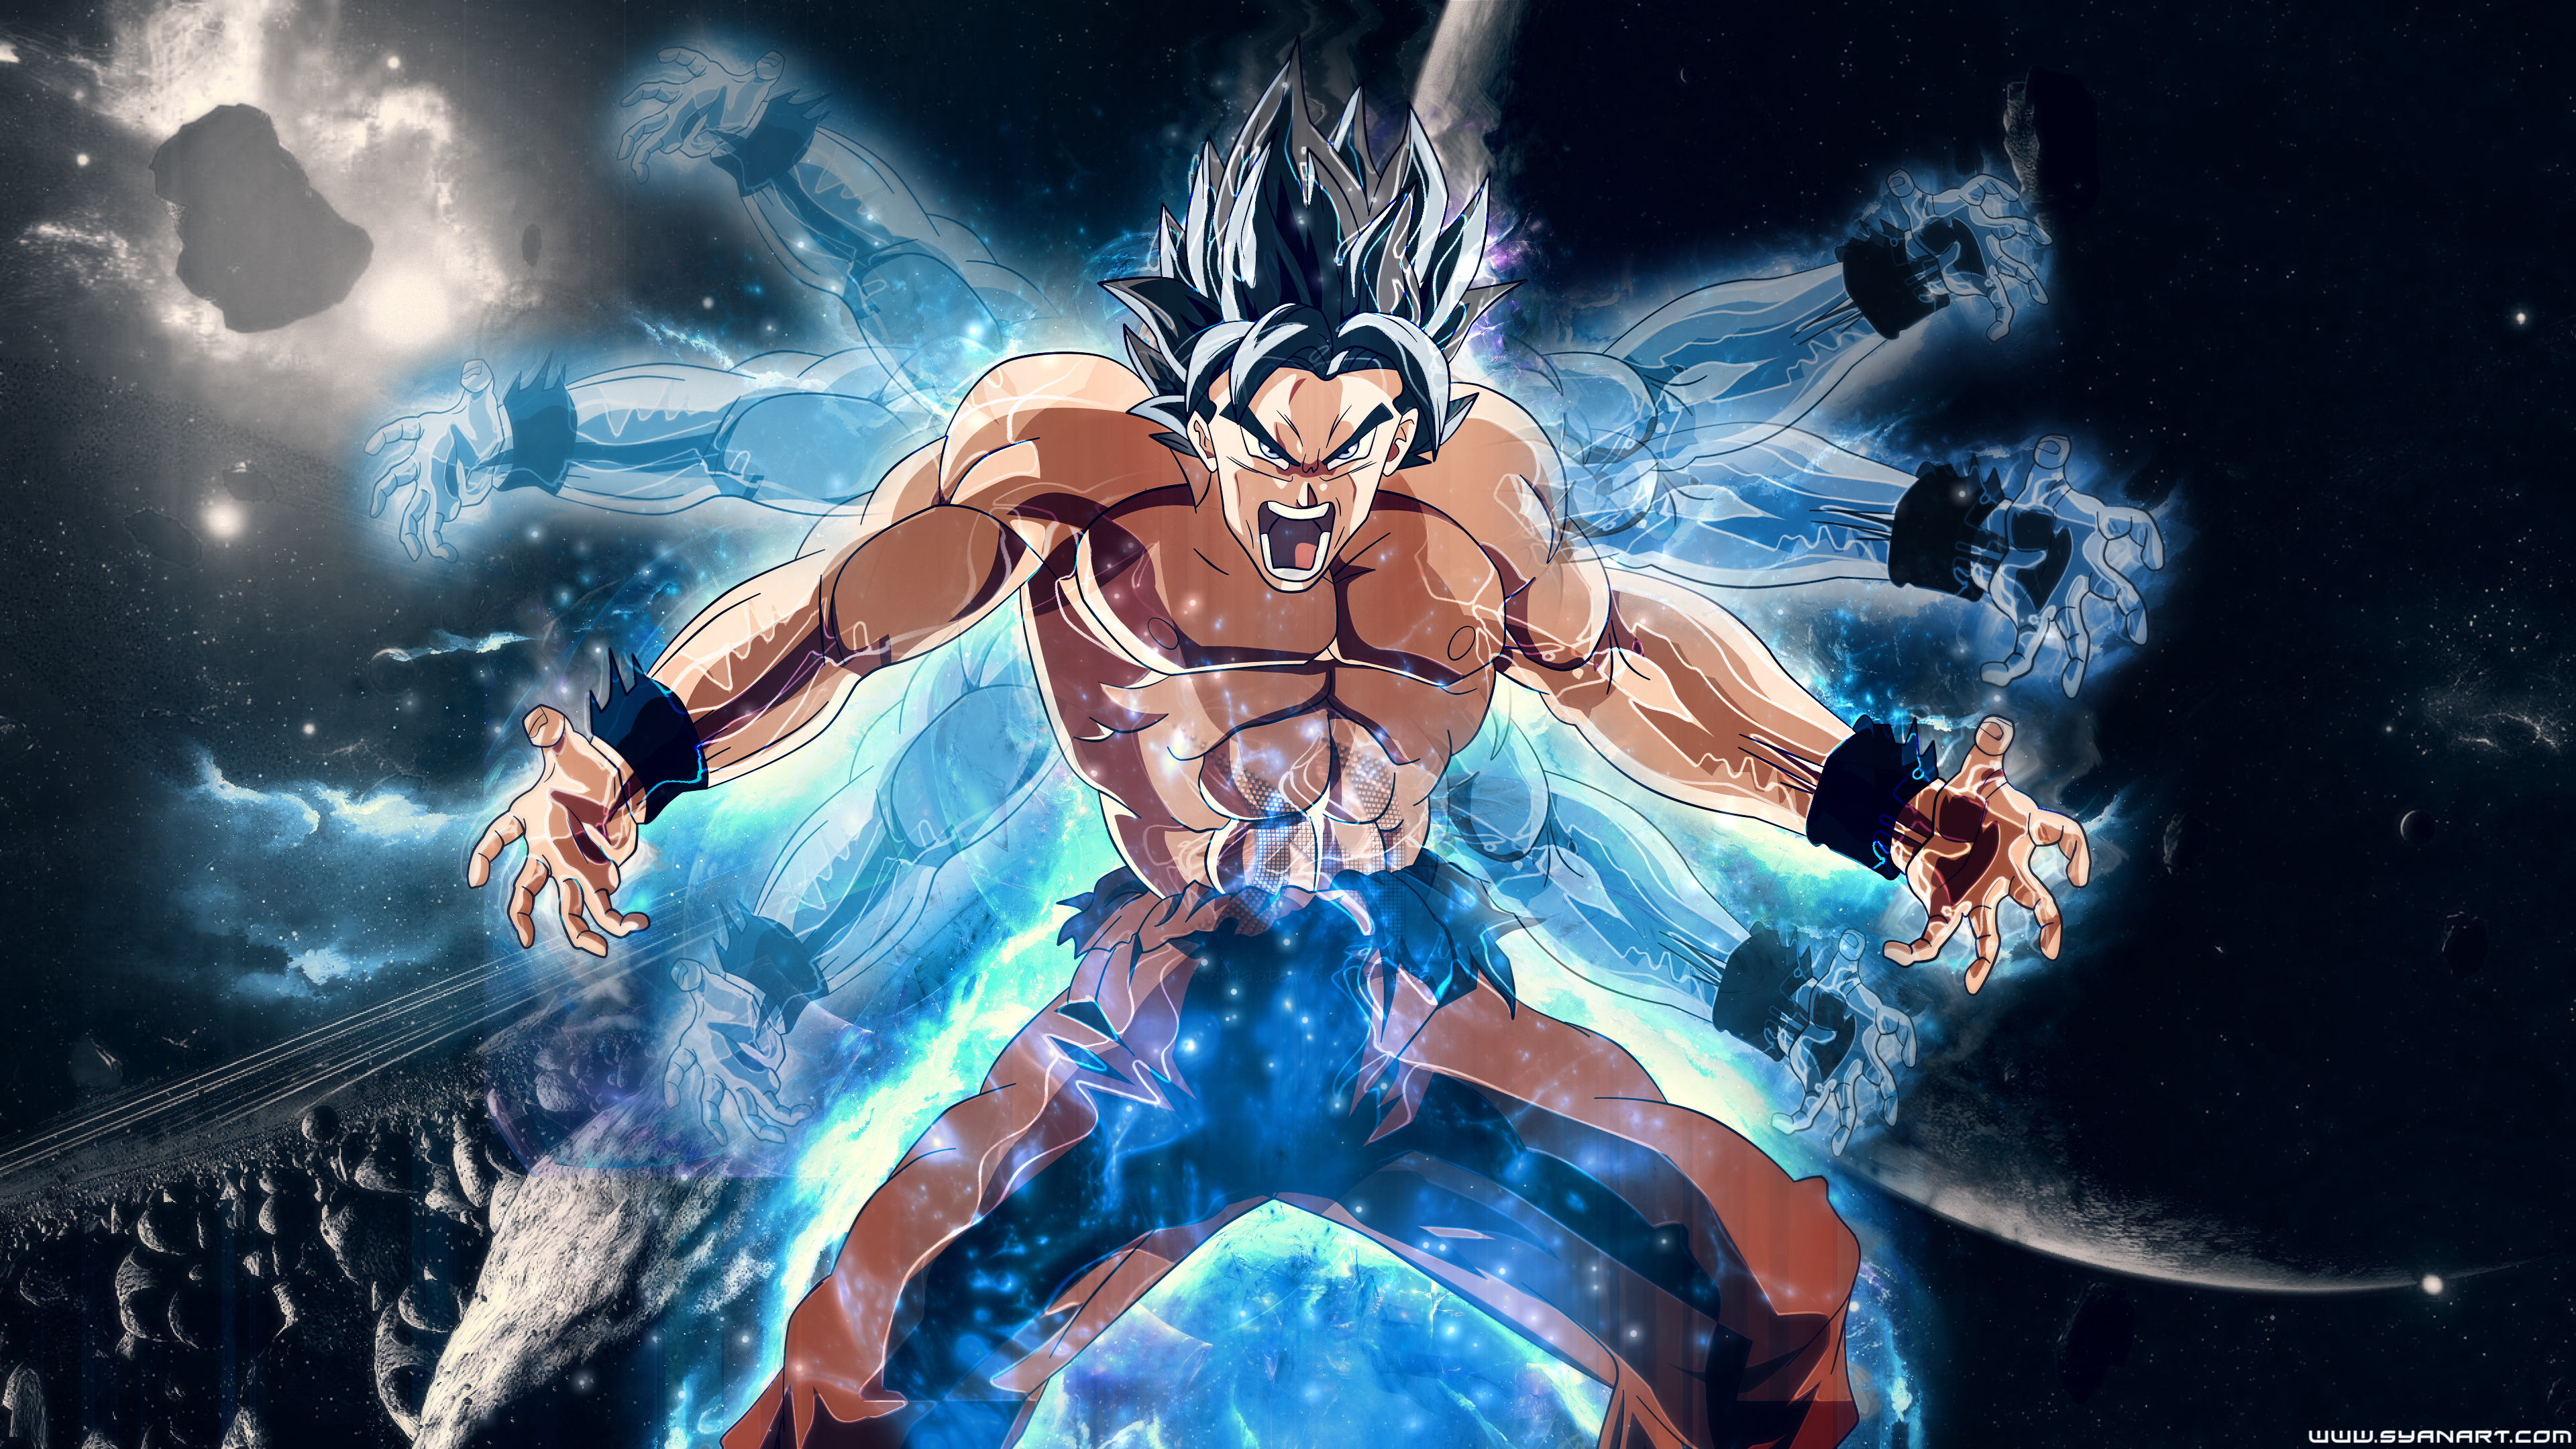 Dragon Ball Super Goku Migatte No Gokui 4k Ultra Fondo De Pantalla Hd Fondo De Escritorio 3840x2160 Id 879337 Wallpaper Abyss